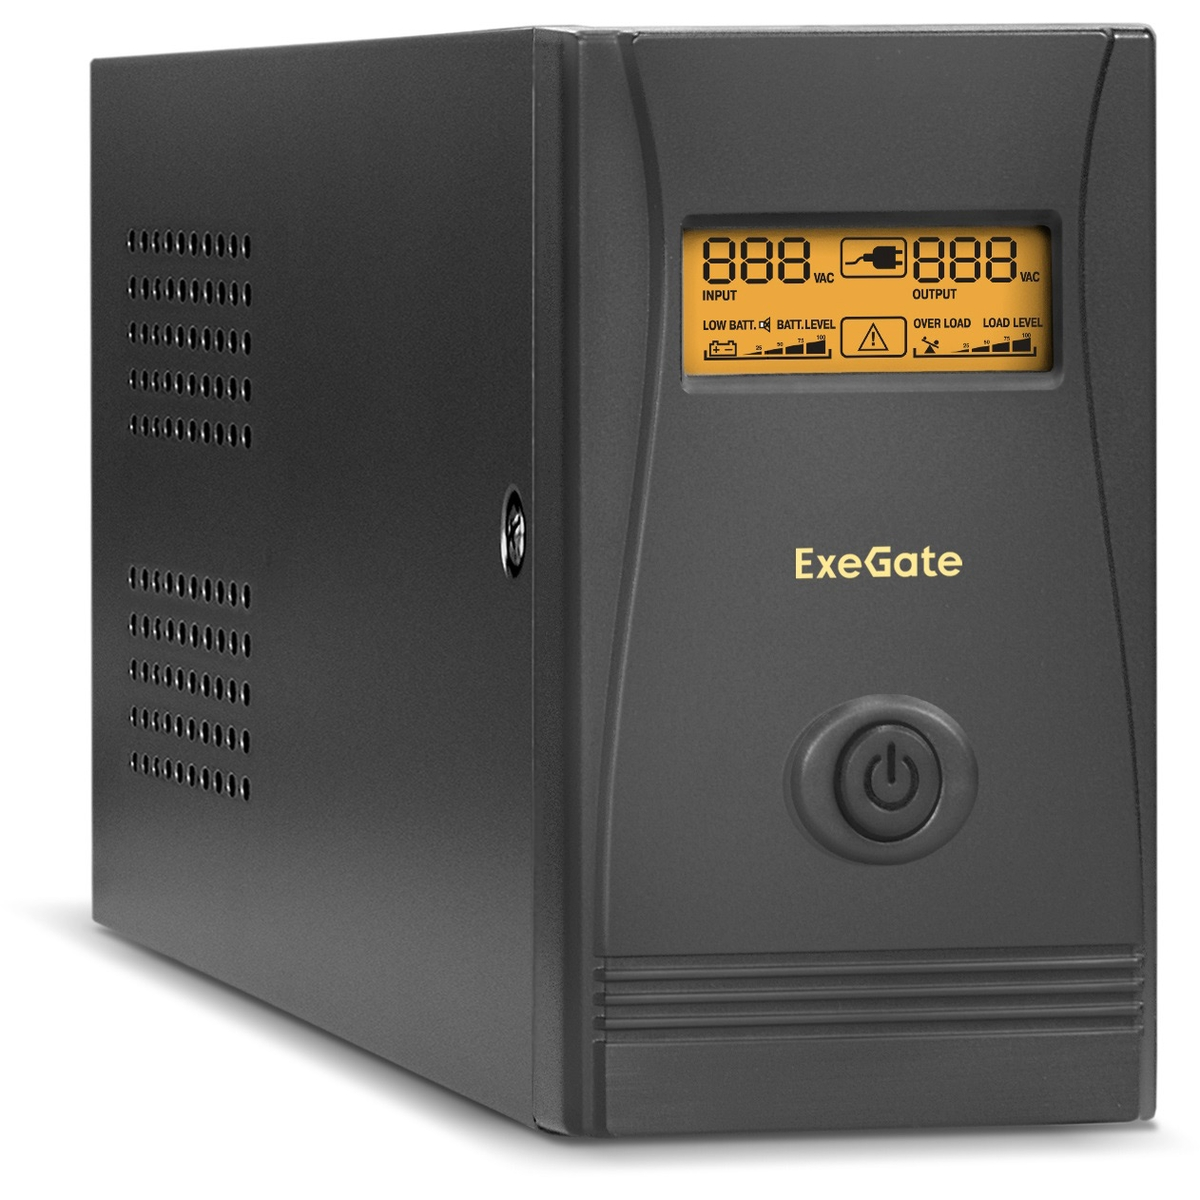 ИБП ExeGate Power Smart ULB-650.LCD.AVR.EURO